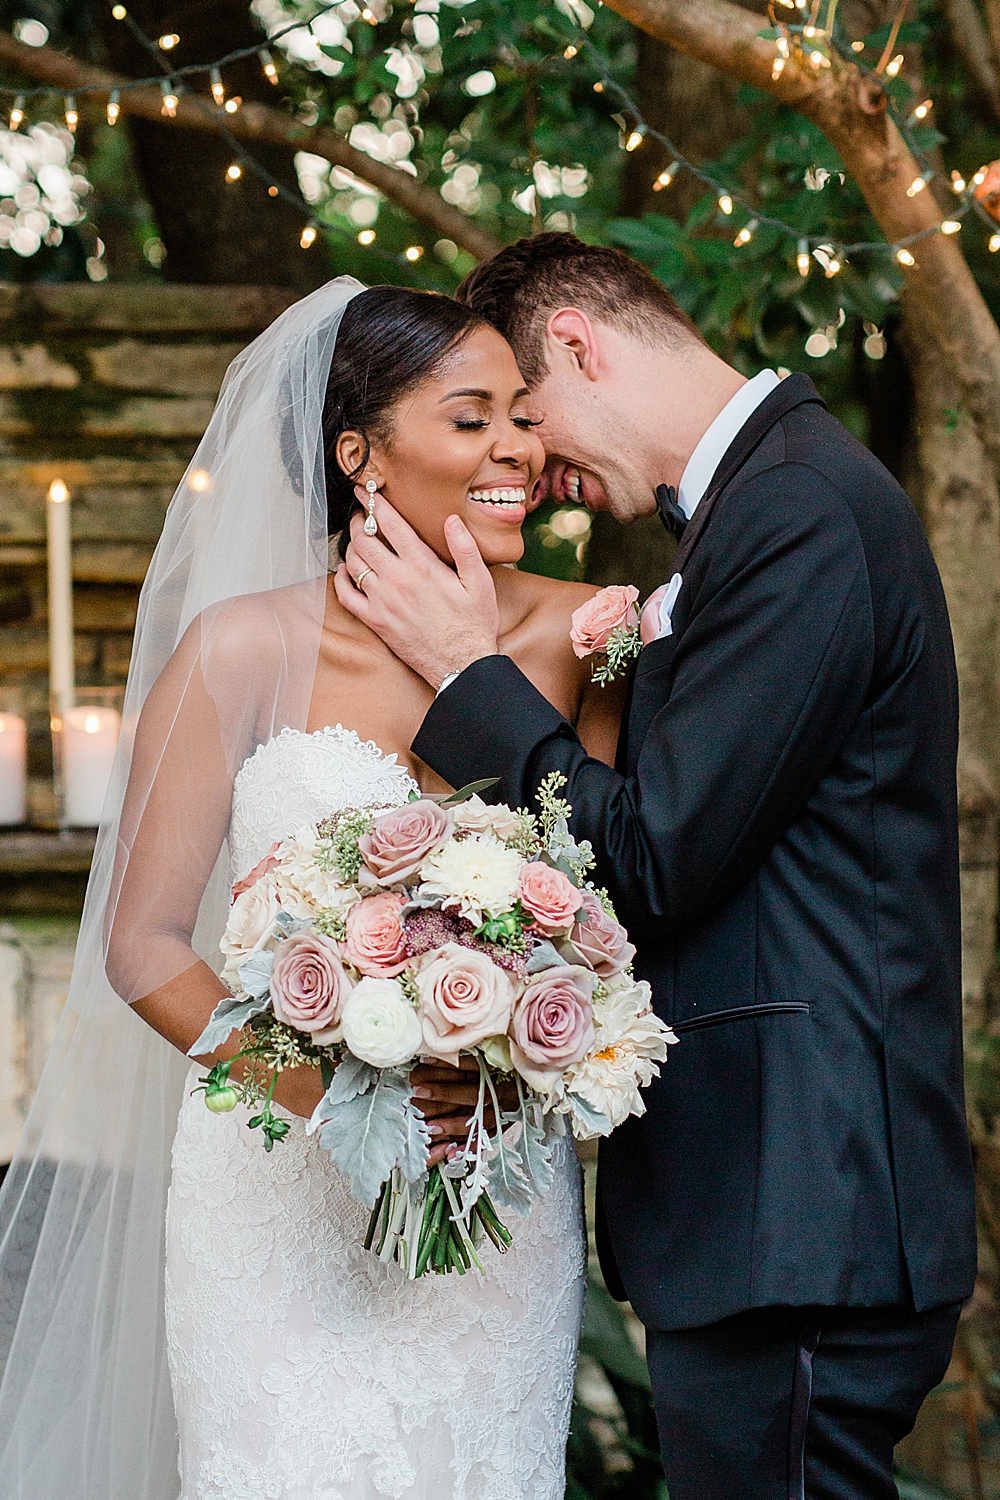 Bride and Groom laugh together under a canopy of trees